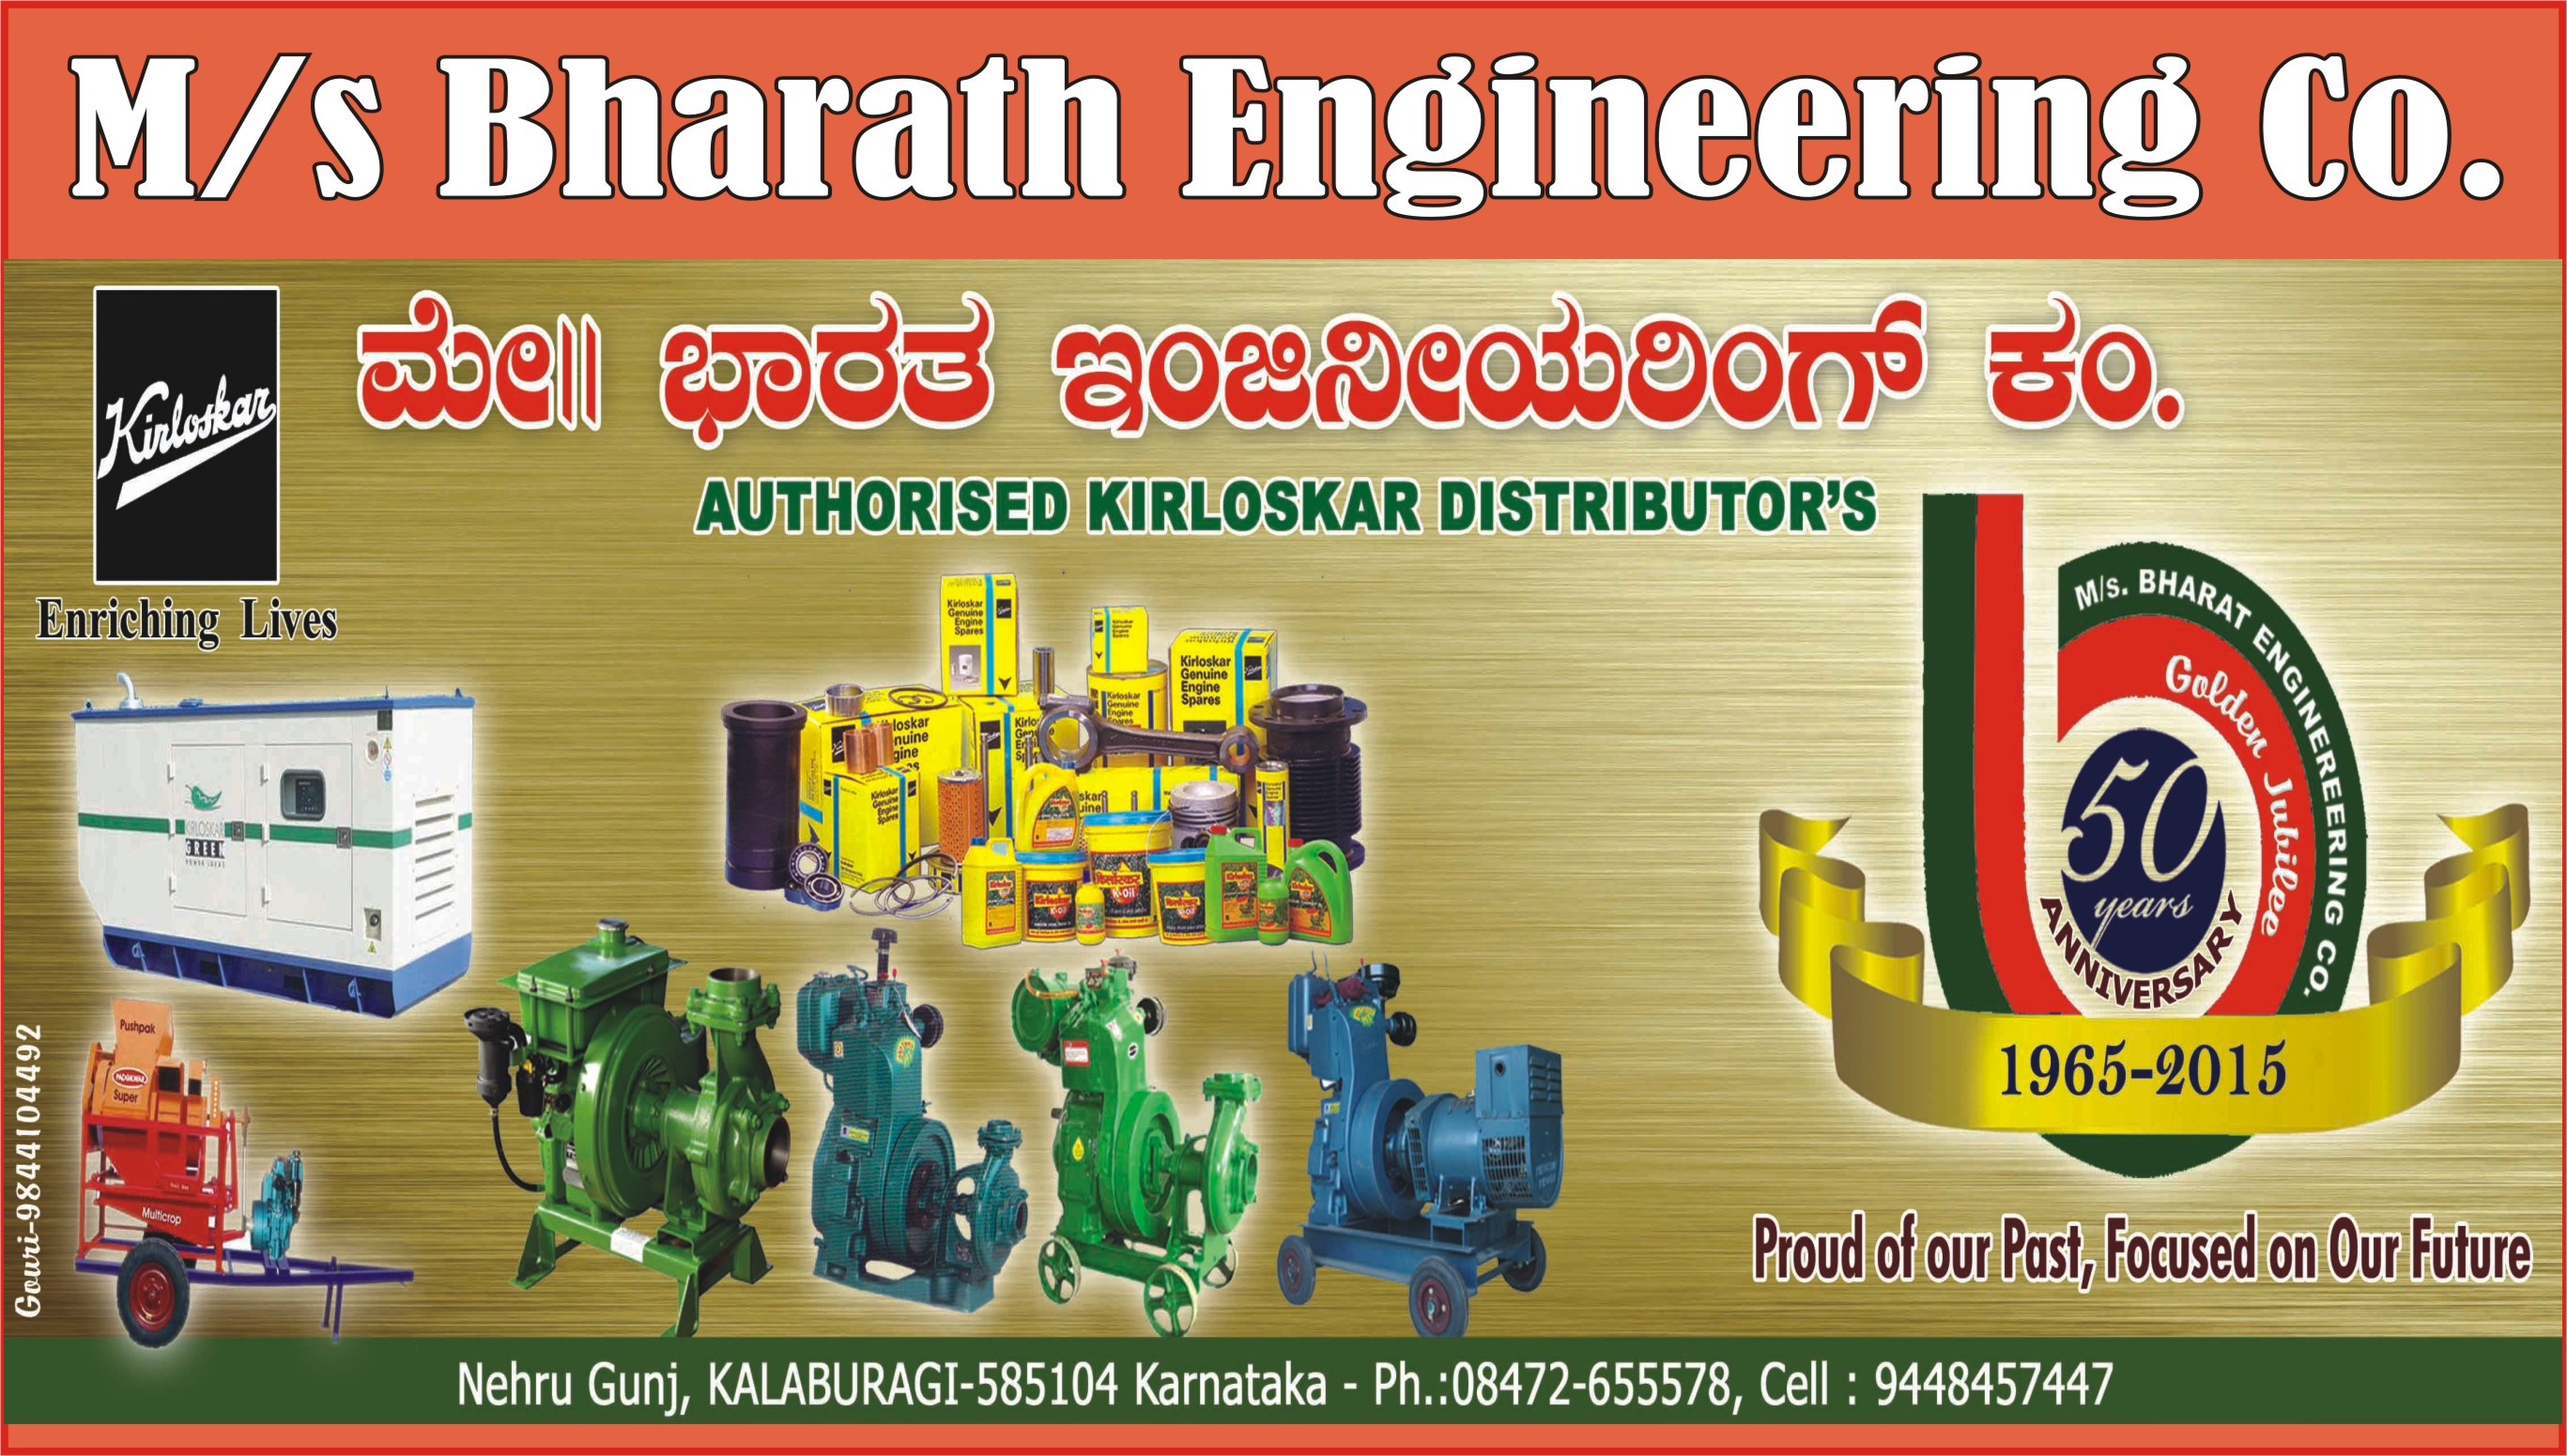 bharat engg works Vibratory parts feeder - leading manufacturer and supplier of material handling belts, bowl feeder manufacturer in india, auto feeder, belt conveyor, material handling conveyors belts, industrial material handling belts, industrial material handling, automatic material handling, vibrators.